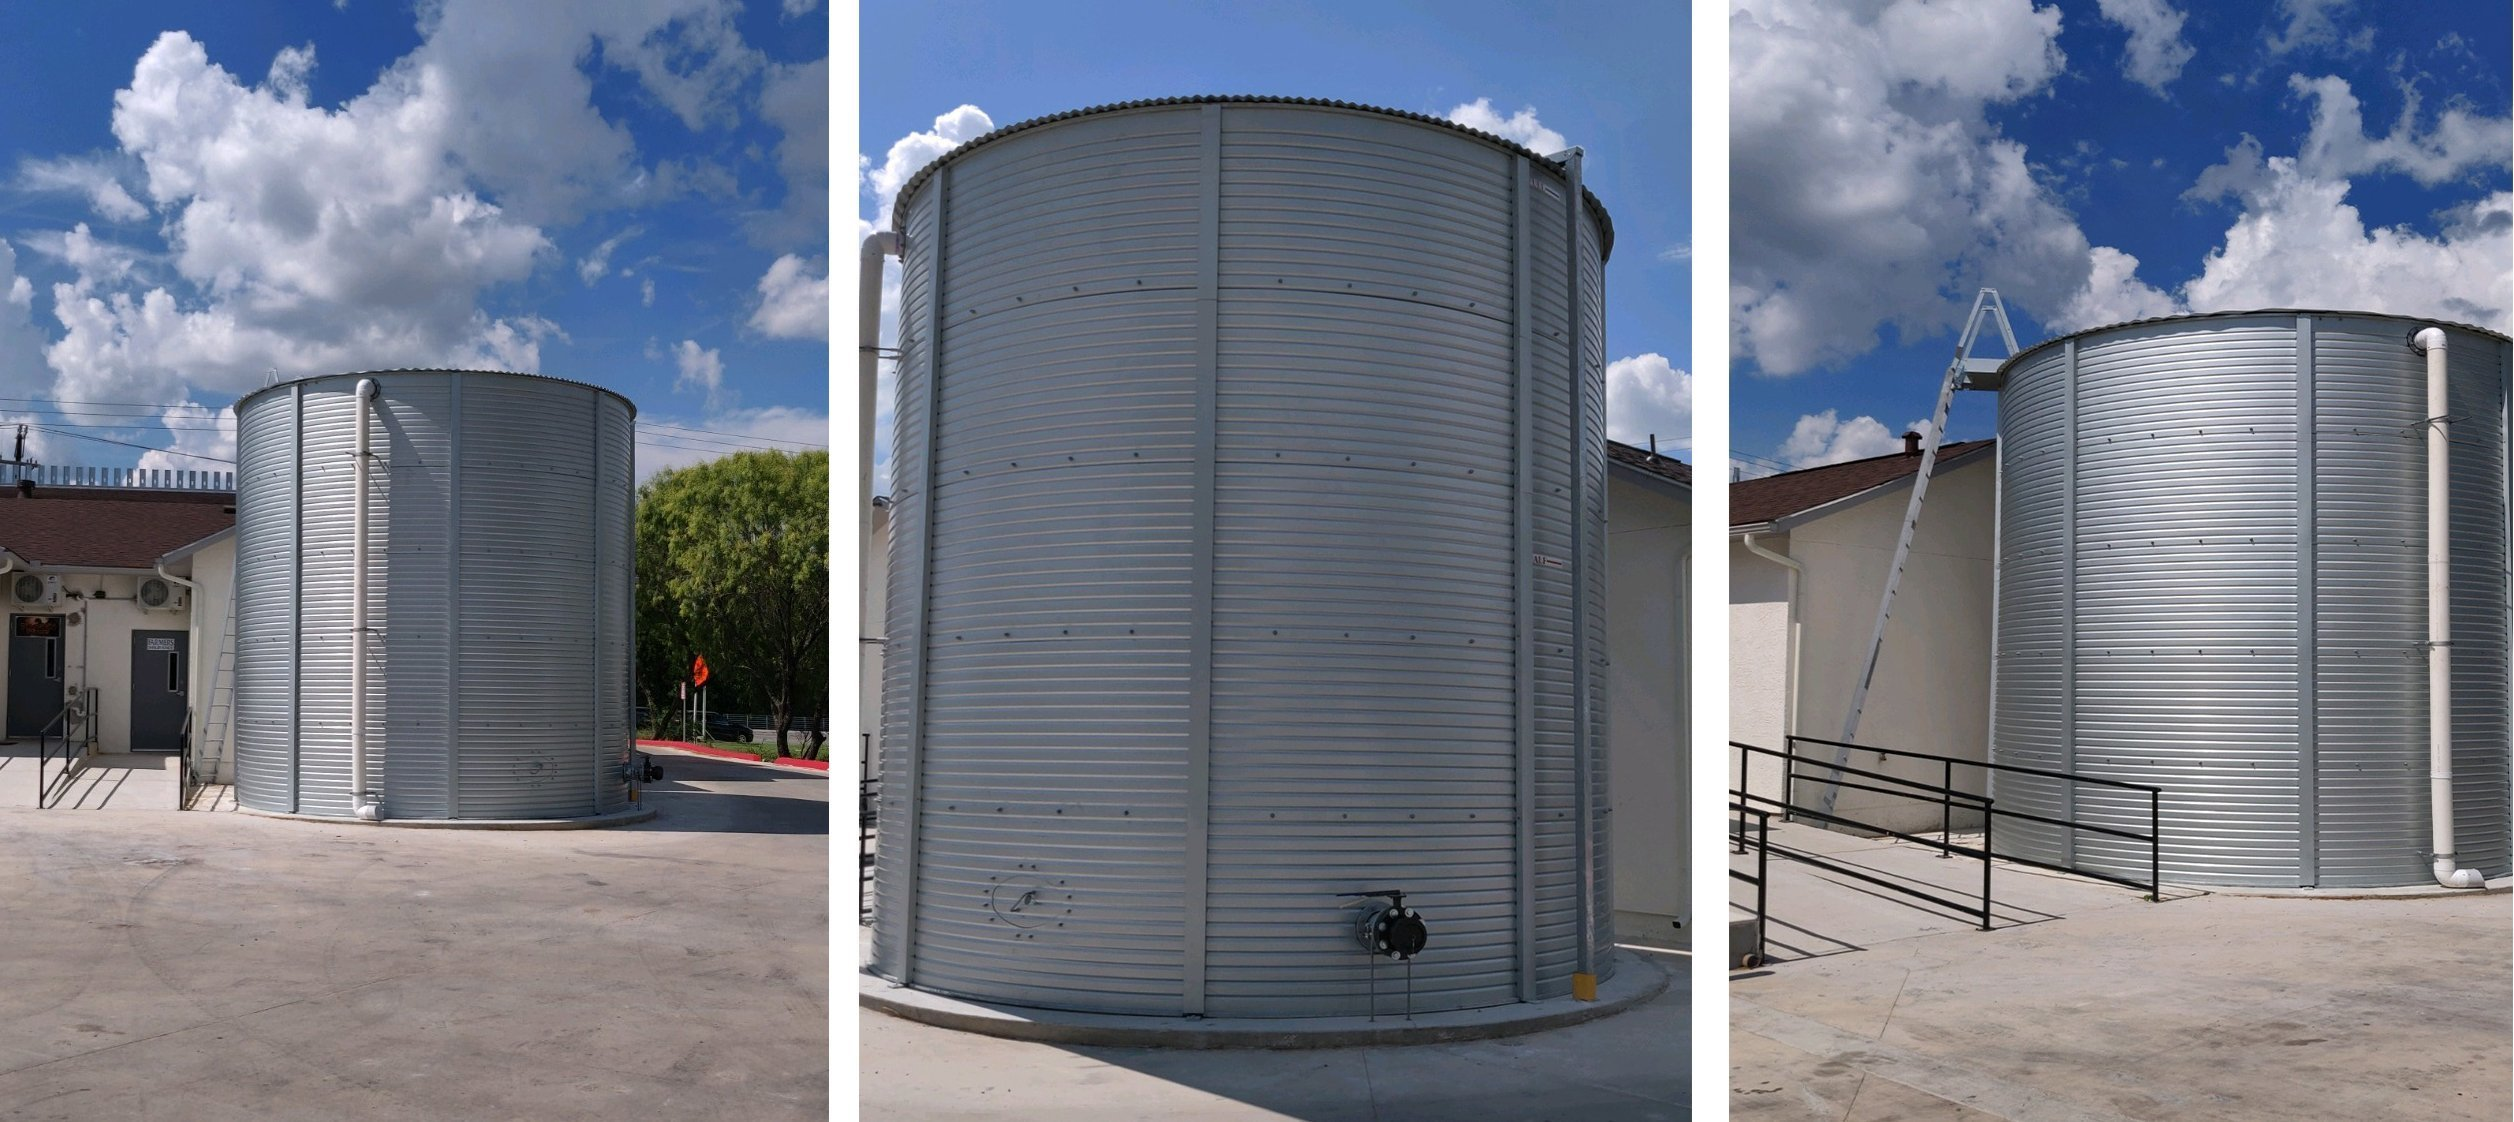 Tanks Alot fire protection water tank system